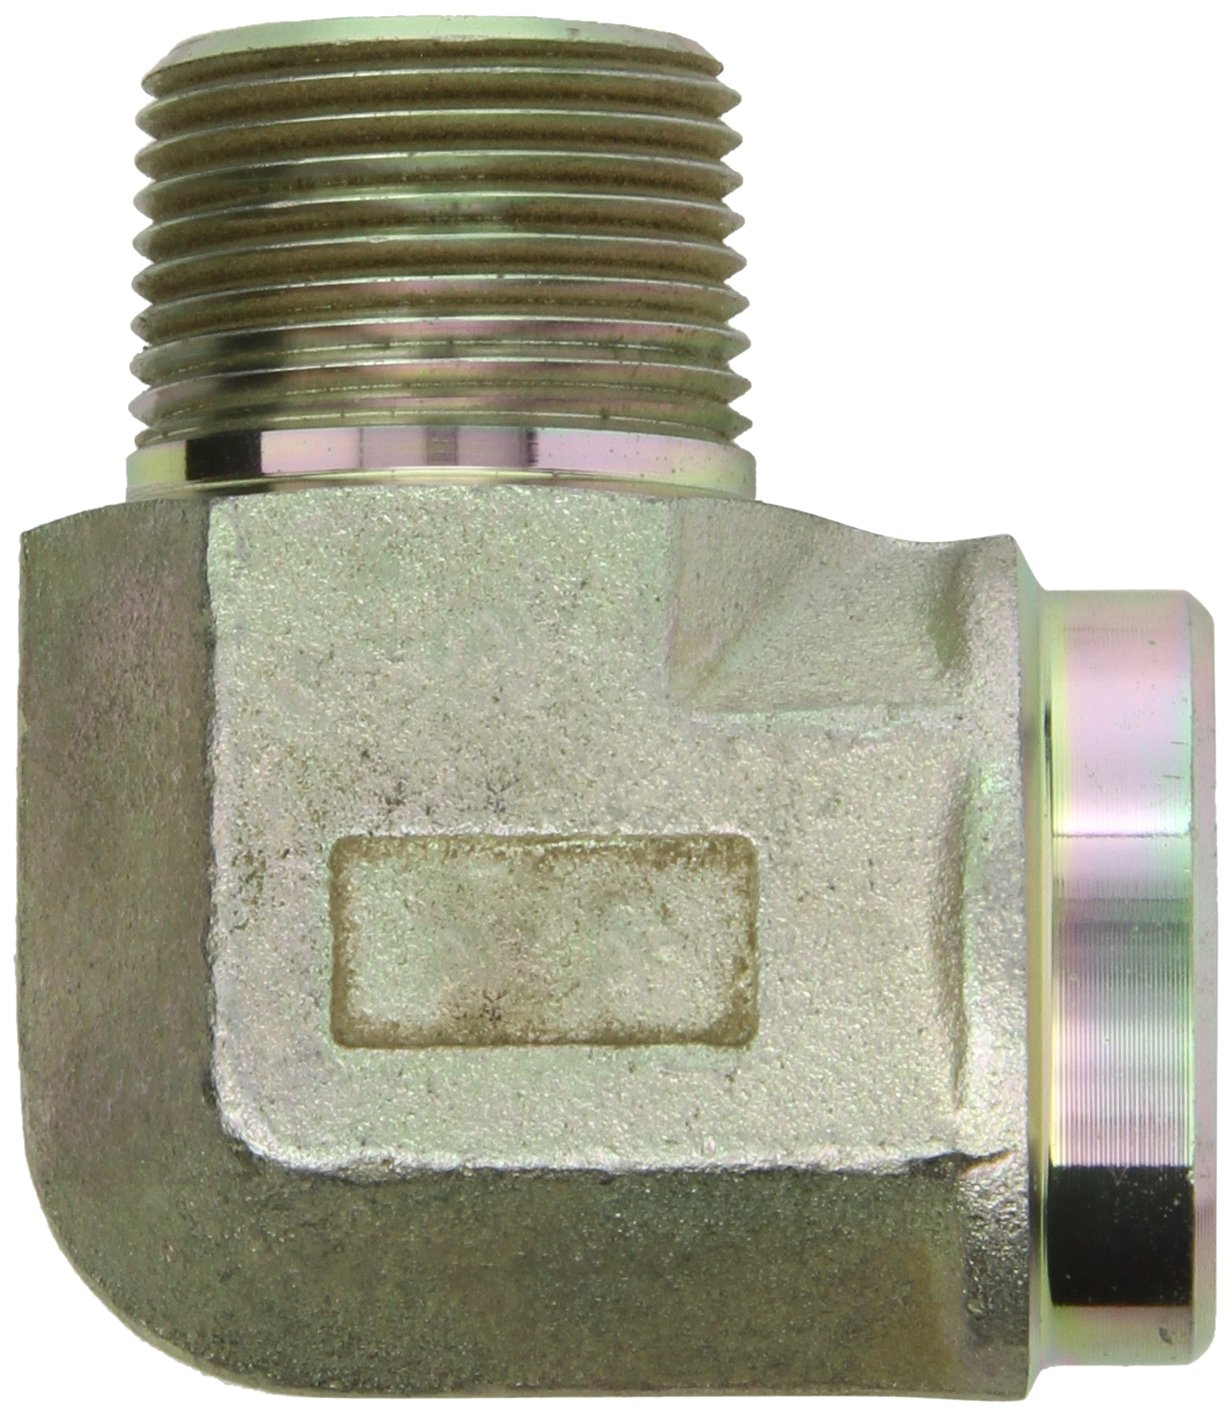 Pack of 10 MettleAir MTE 1//2-1//2 Push to Connect Tee T Union Fitting 1//2 OD 1//2 OD MTE 1//2-1//2-10PK Pack of 10